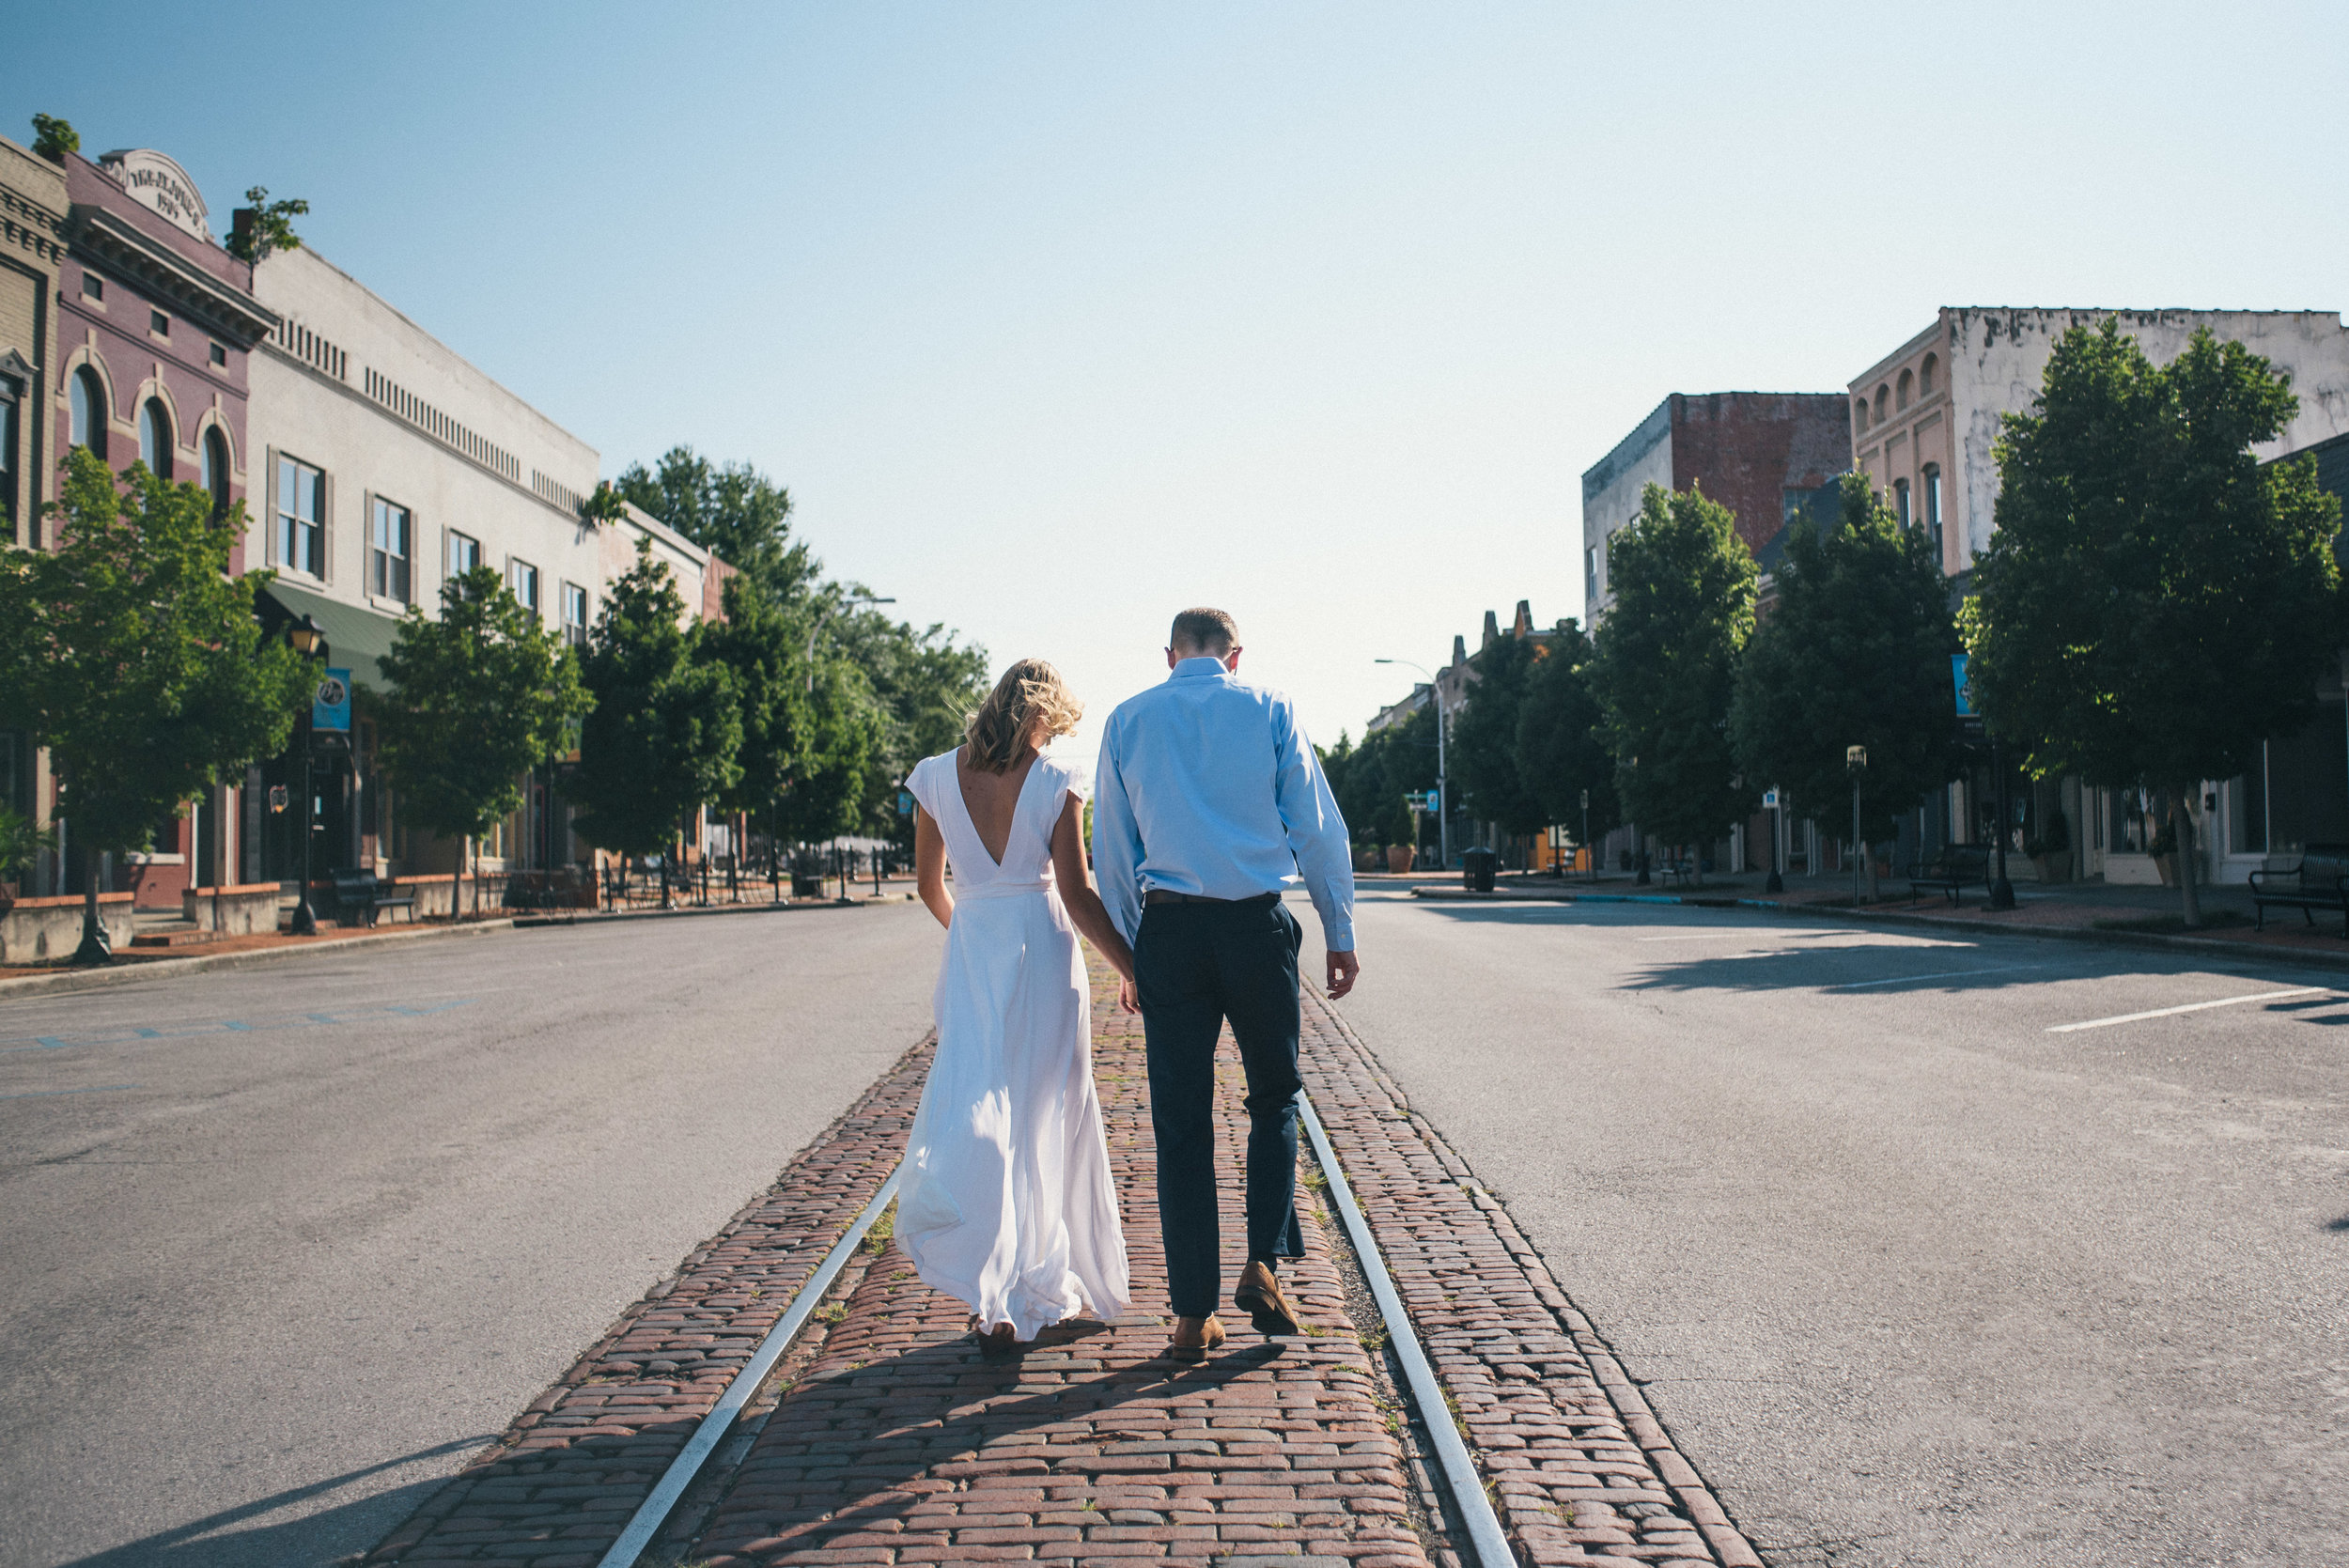 taryn-and-jackson-engagement-save-the-date (16 of 219).jpg